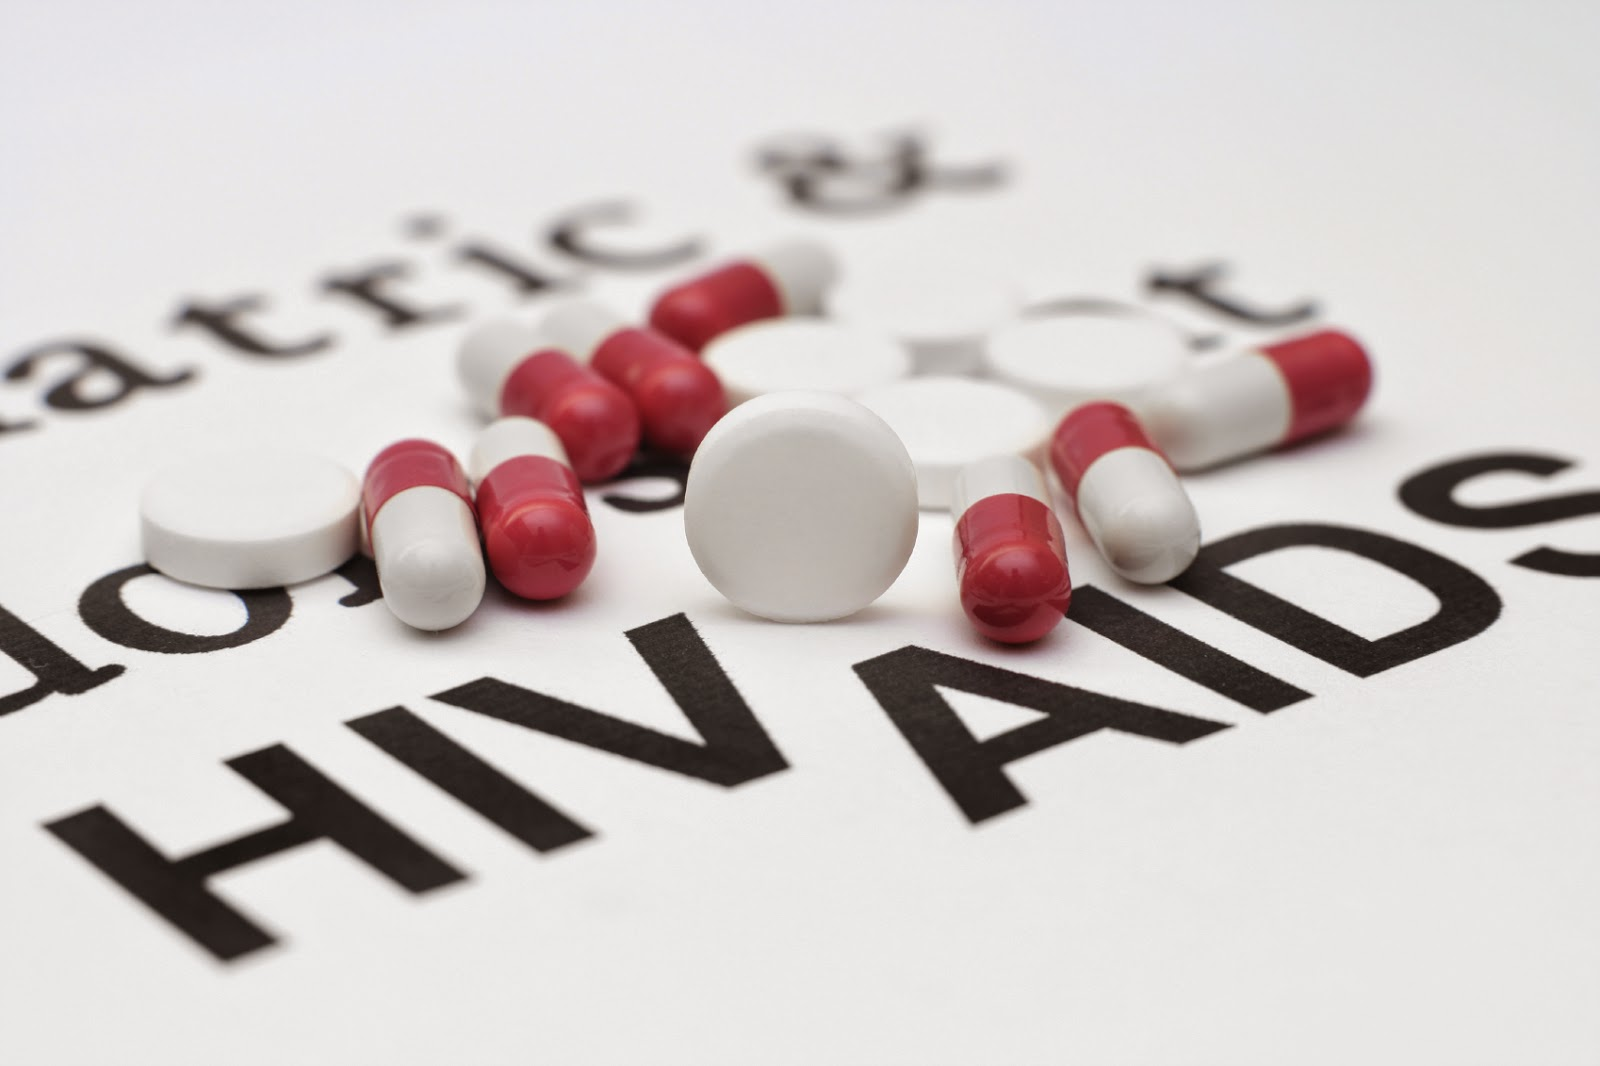 Cancer Stem Cell Therapy Leaves Two Australian Patients HIV-FREE